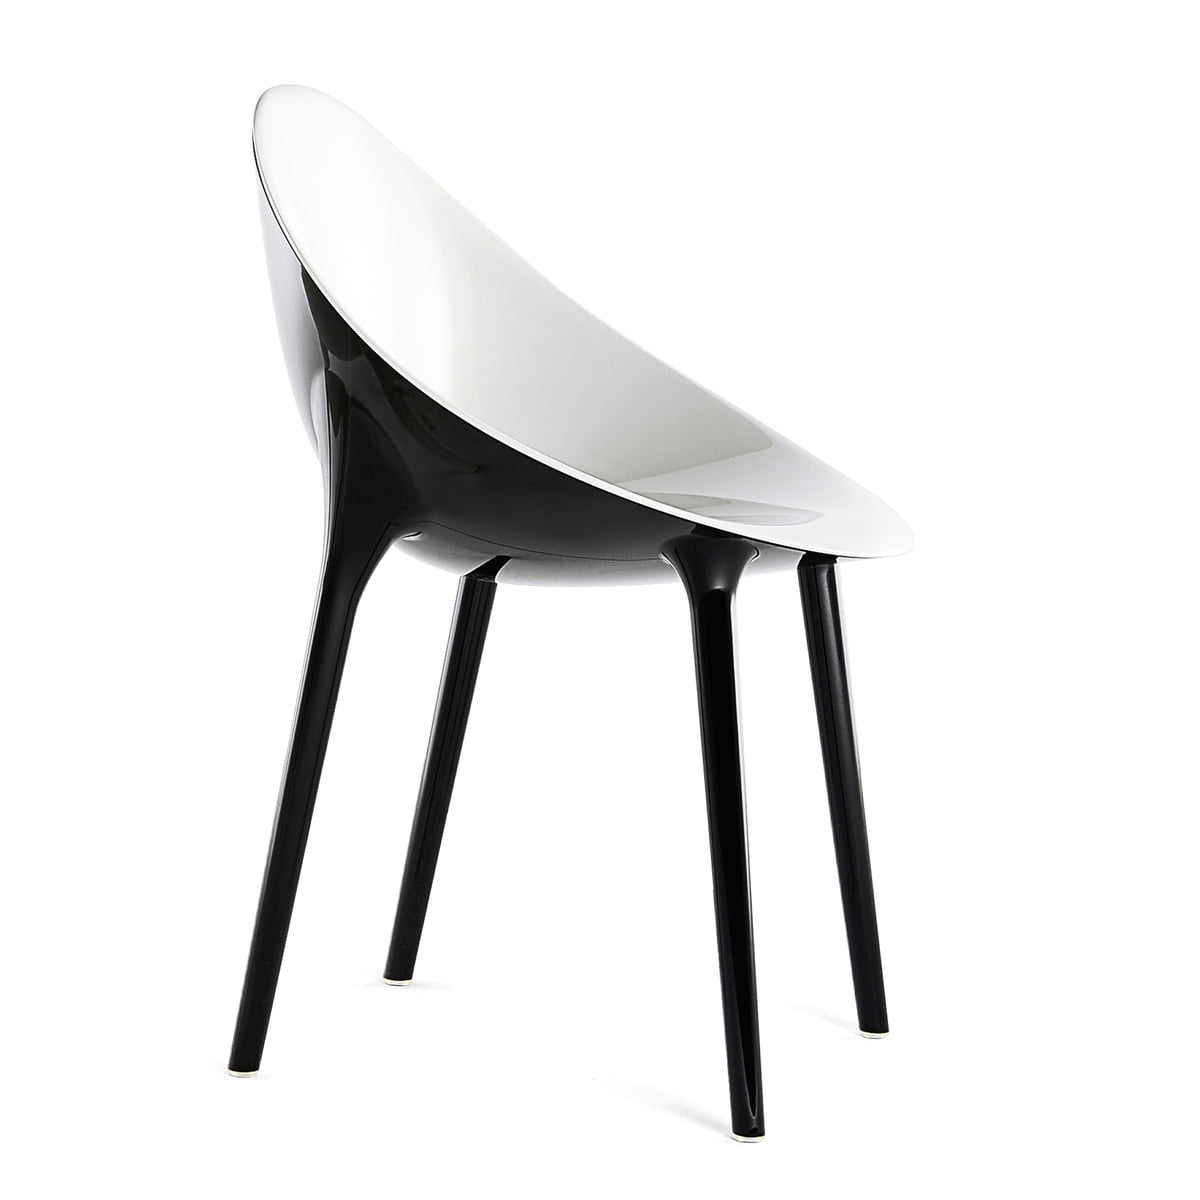 Impossible Impossible Super Kartell Schwarz StuhlWeiss Super Schwarz Kartell Kartell Super StuhlWeiss hQsrdCt